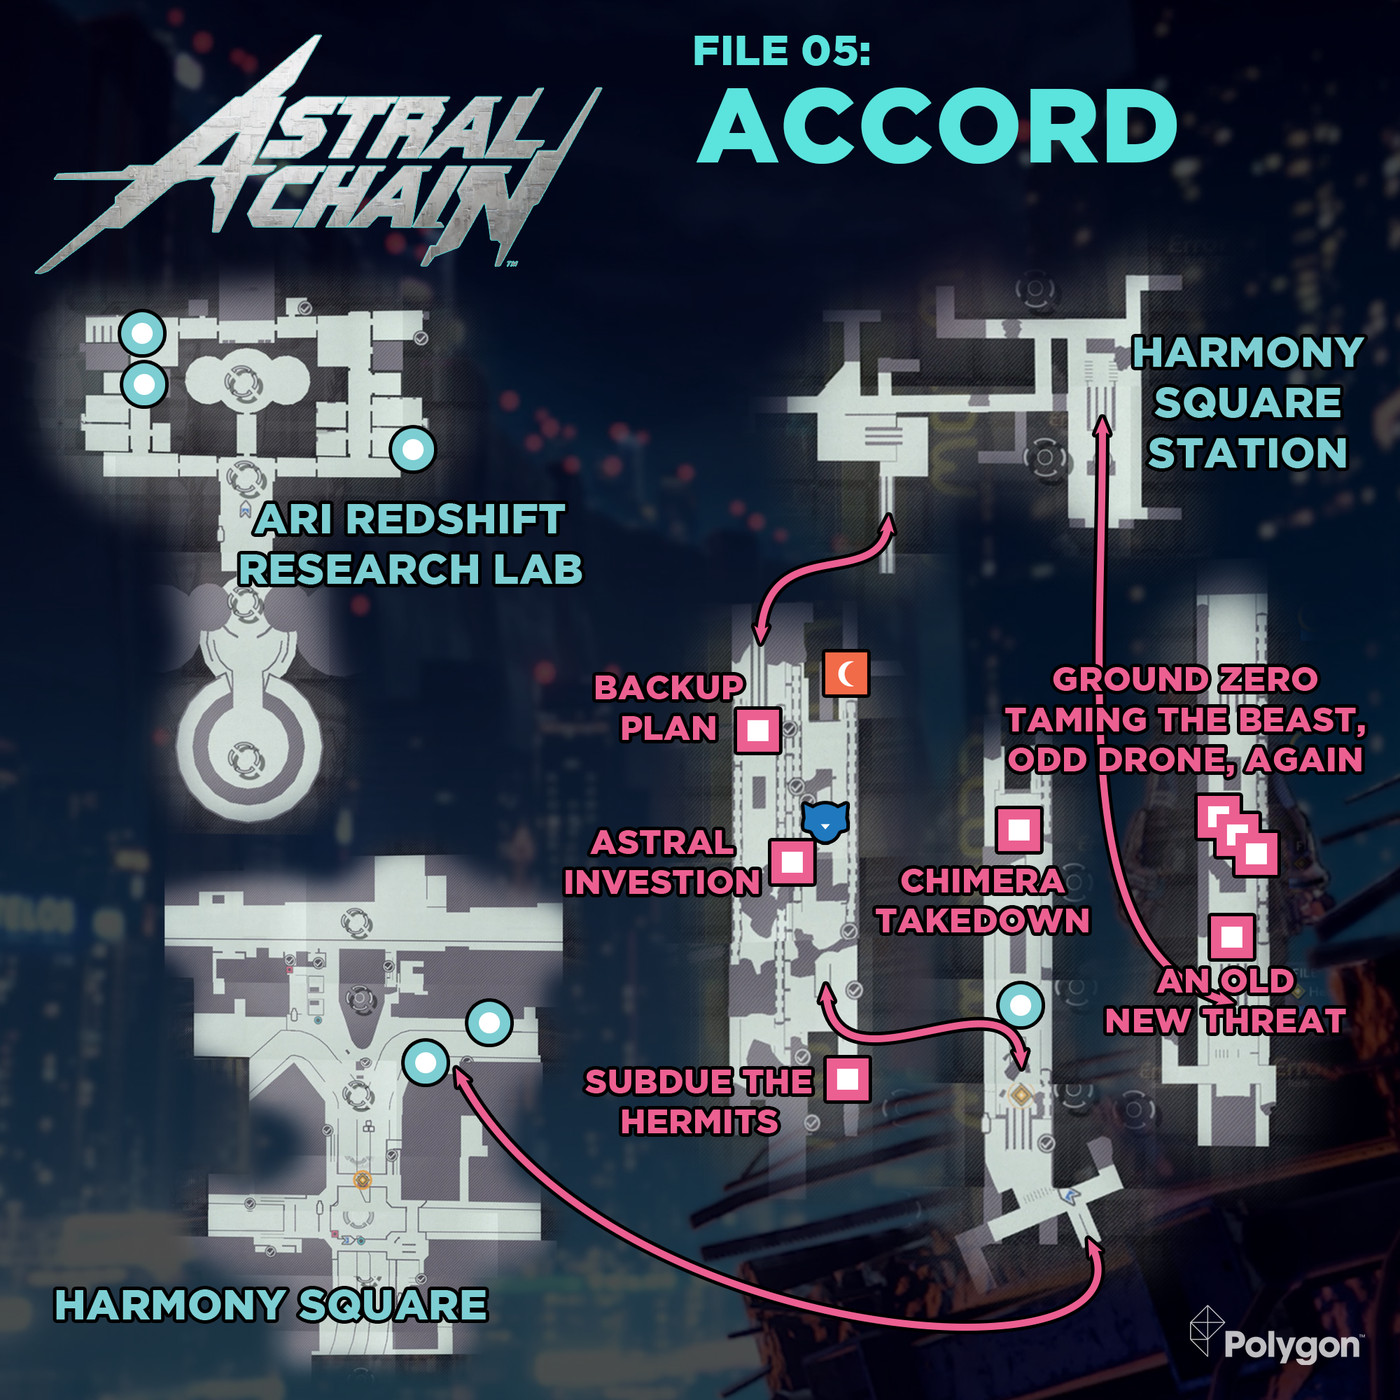 Astral Chain guide: File 05 Accord cases, cats, and bathroom